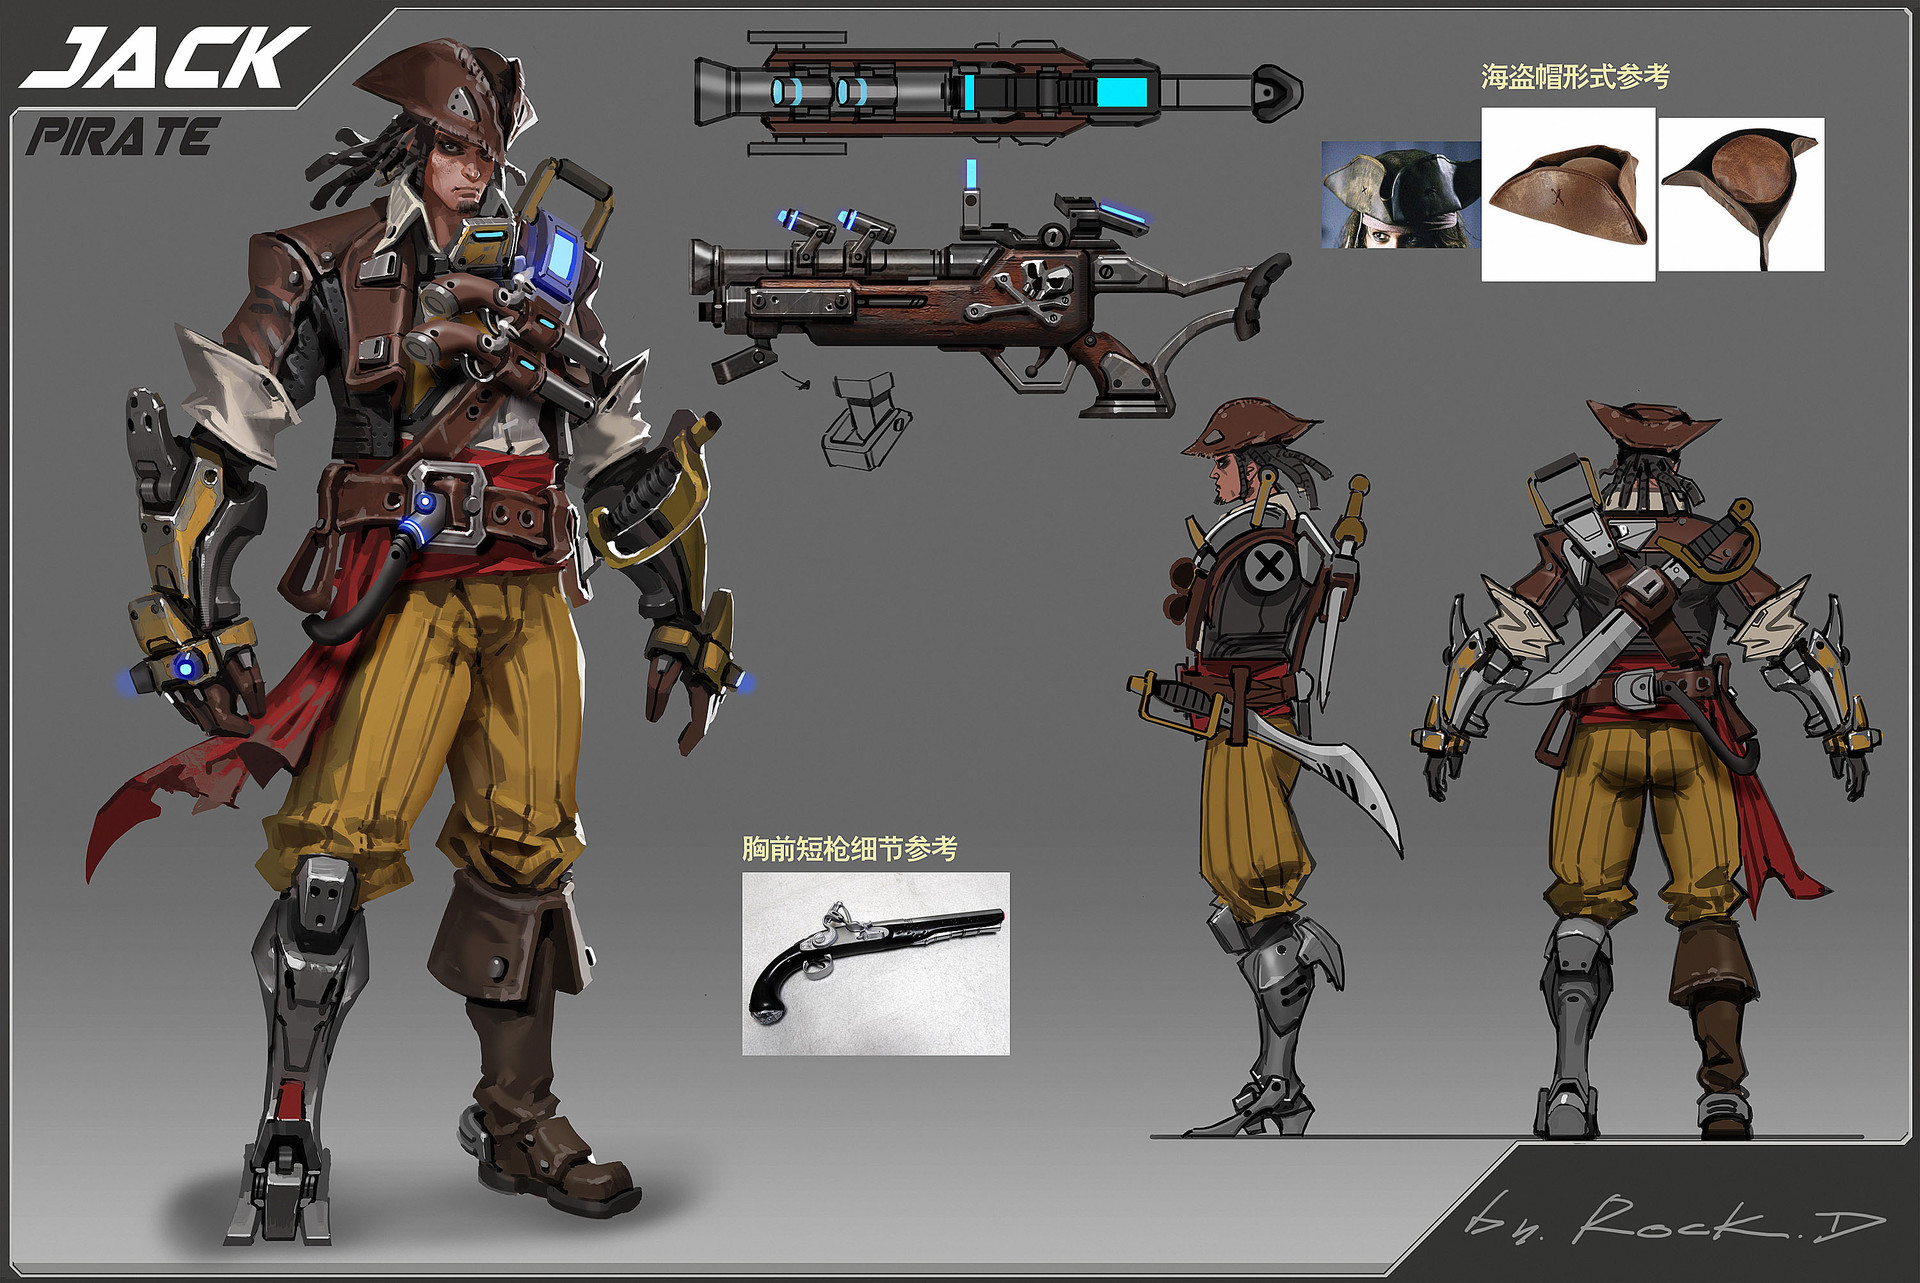 Rock d scifi pirate concept